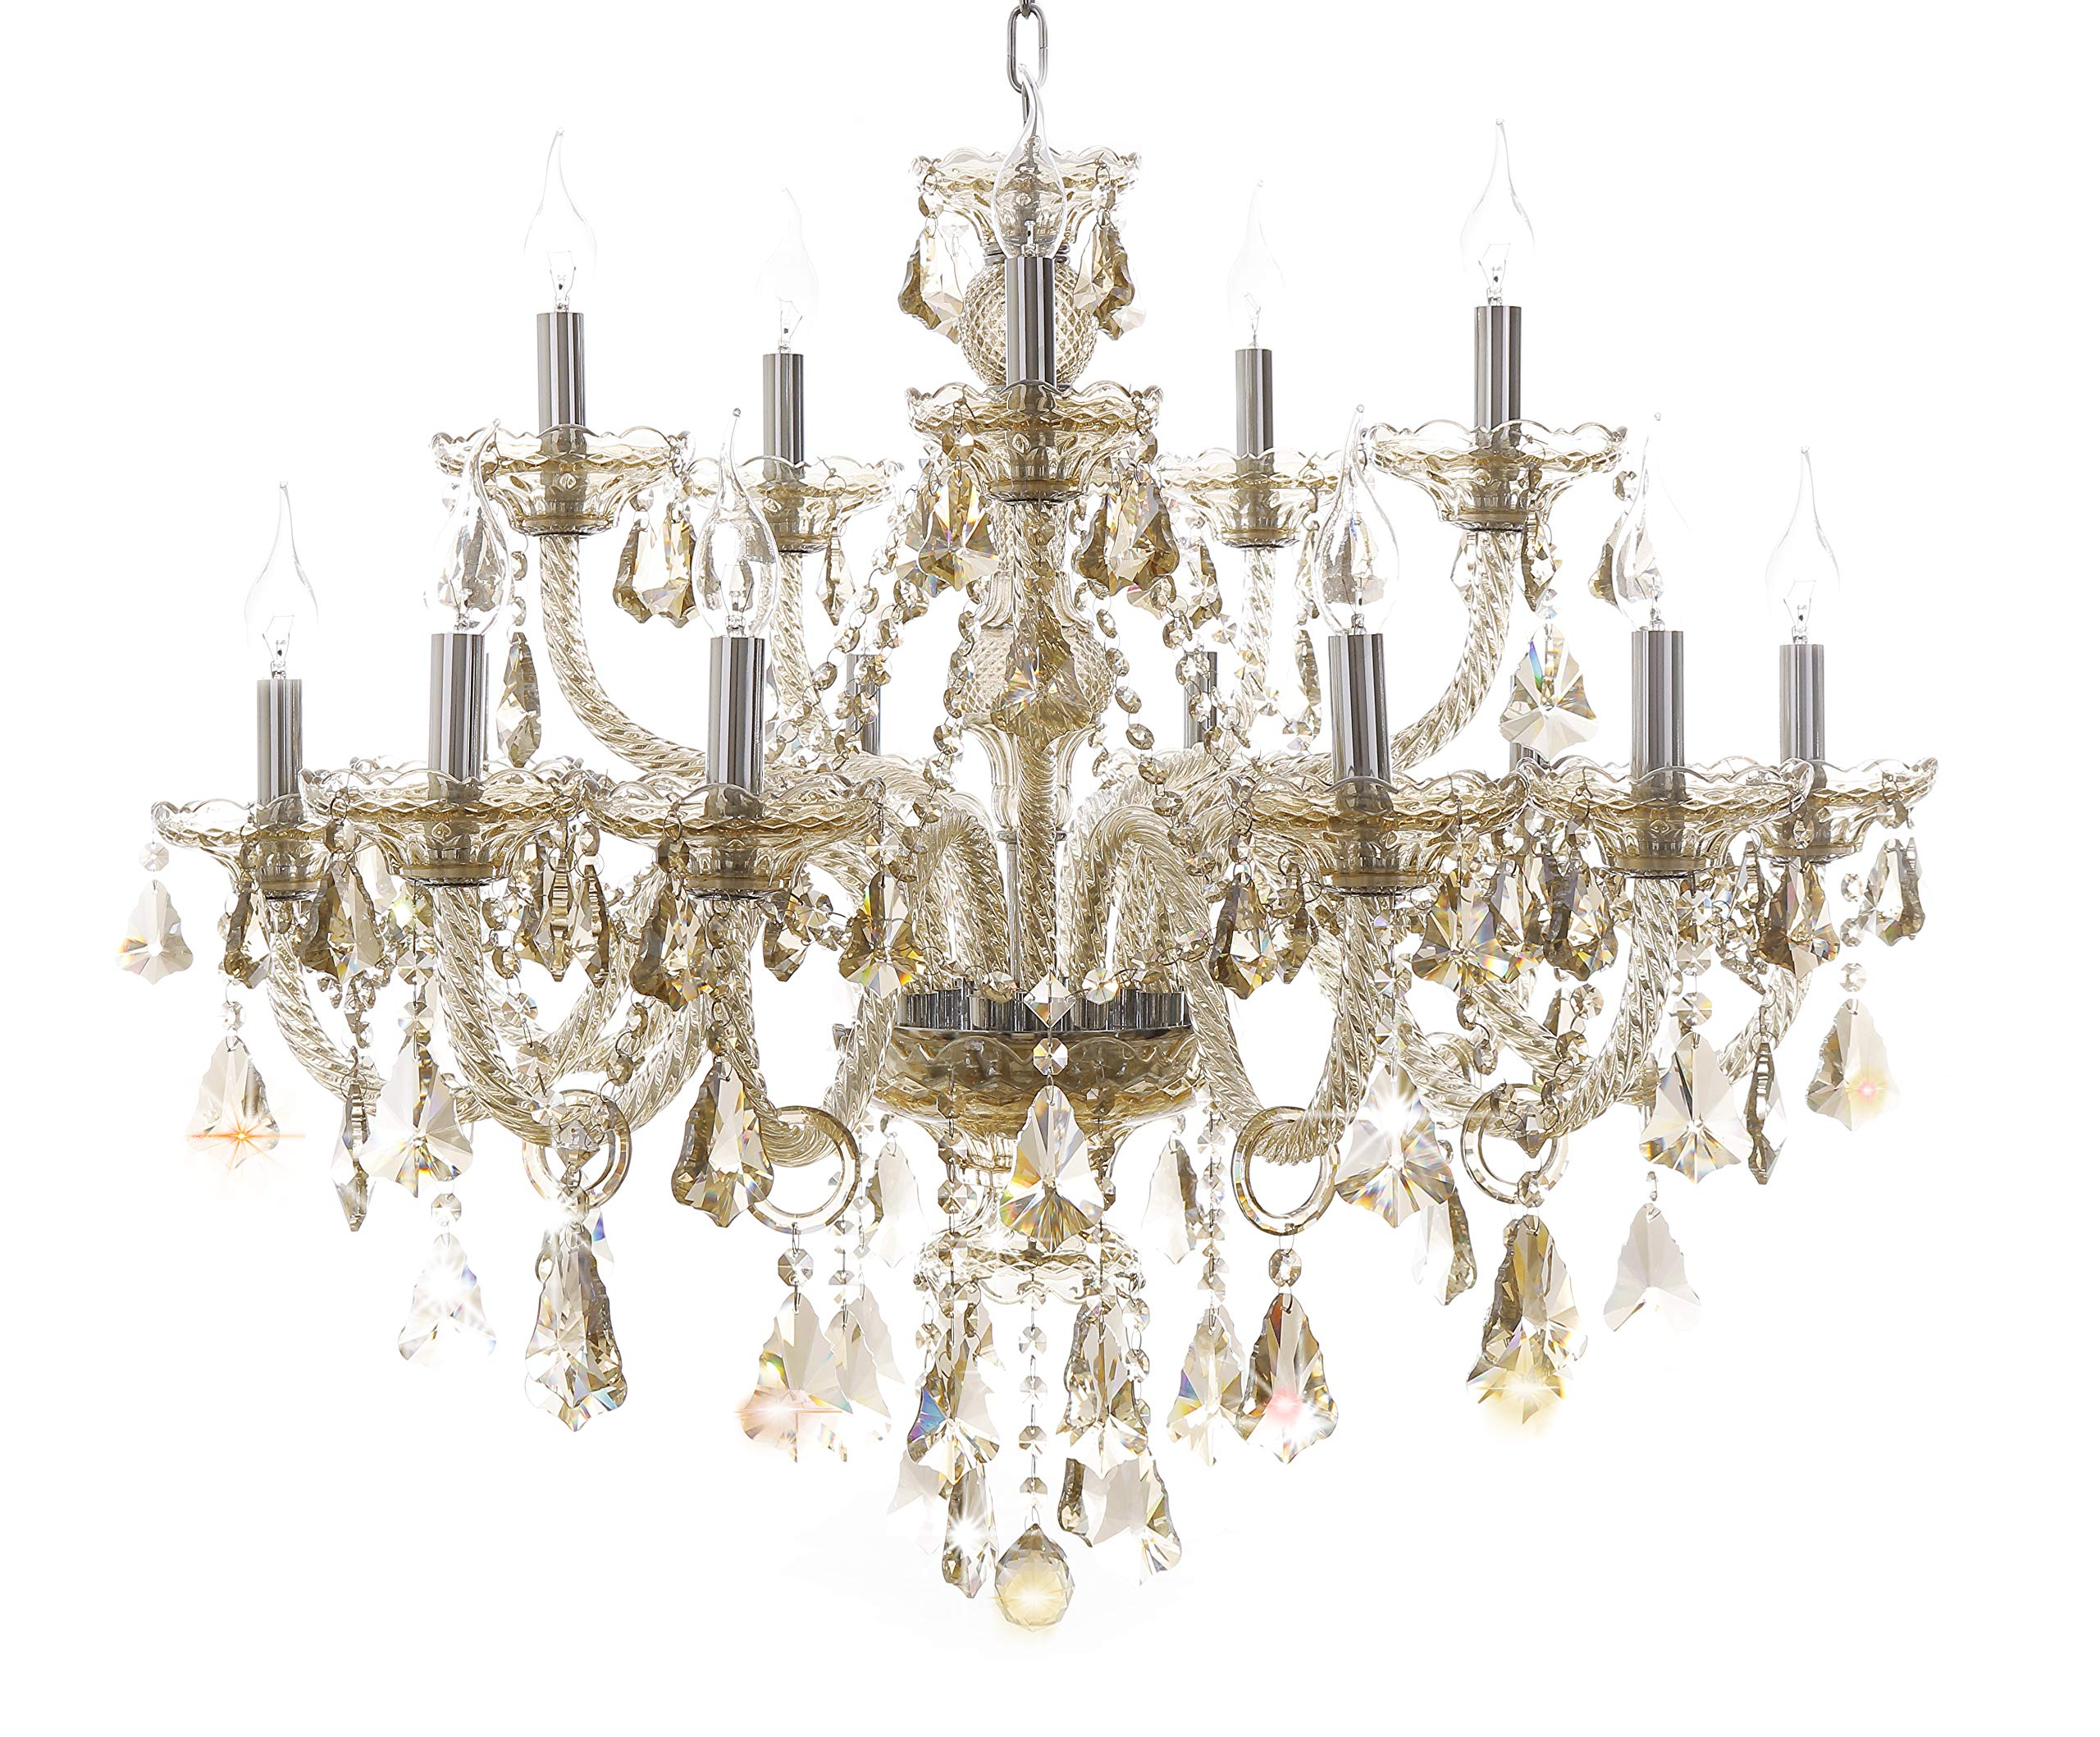 Generic Island Lights Crystals Chandelier 15 Lights Ceiling Fixtures Color Cognac by Unknown (Image #1)